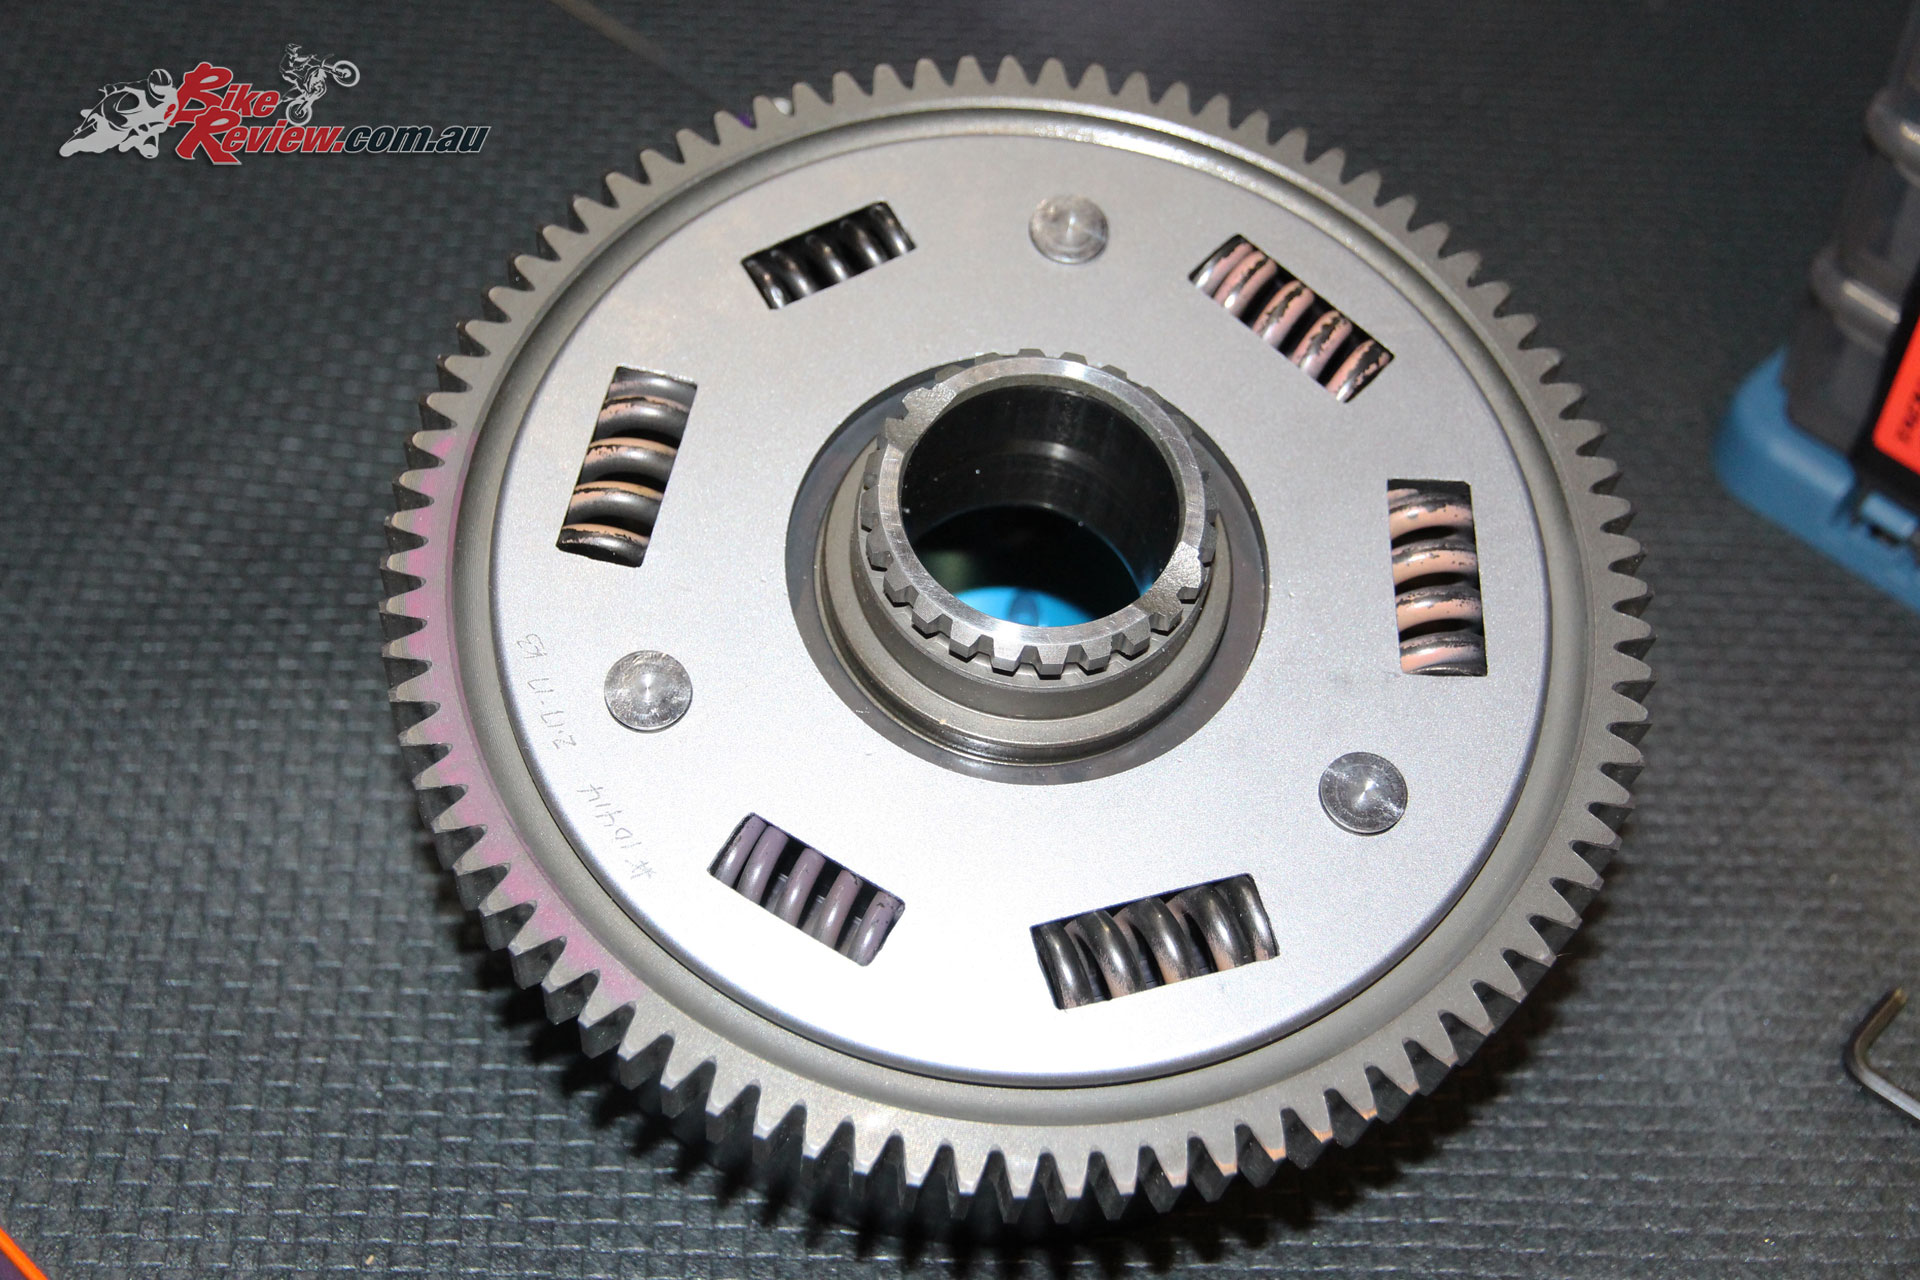 Original Suzuki drive gear. Fitted to MTC billet basket, complete with new springs.